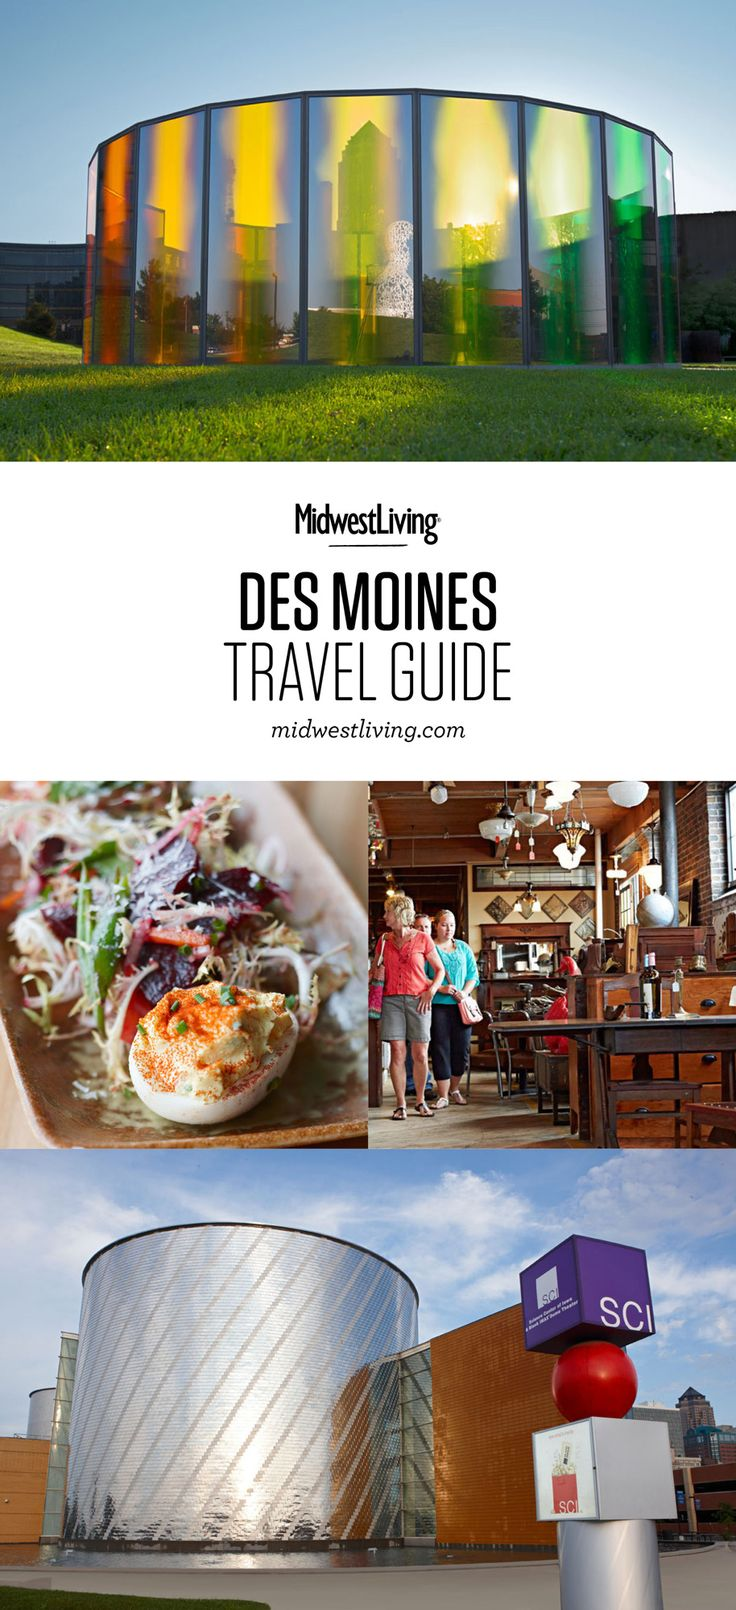 Visiting the state capitol, the Iowa State Fair, Adventureland Park and a world-class sculpture park are just a few of the things to do in Des Moines. Check out our guide for what to do, where to eat and where to stay in Iowa's capital.